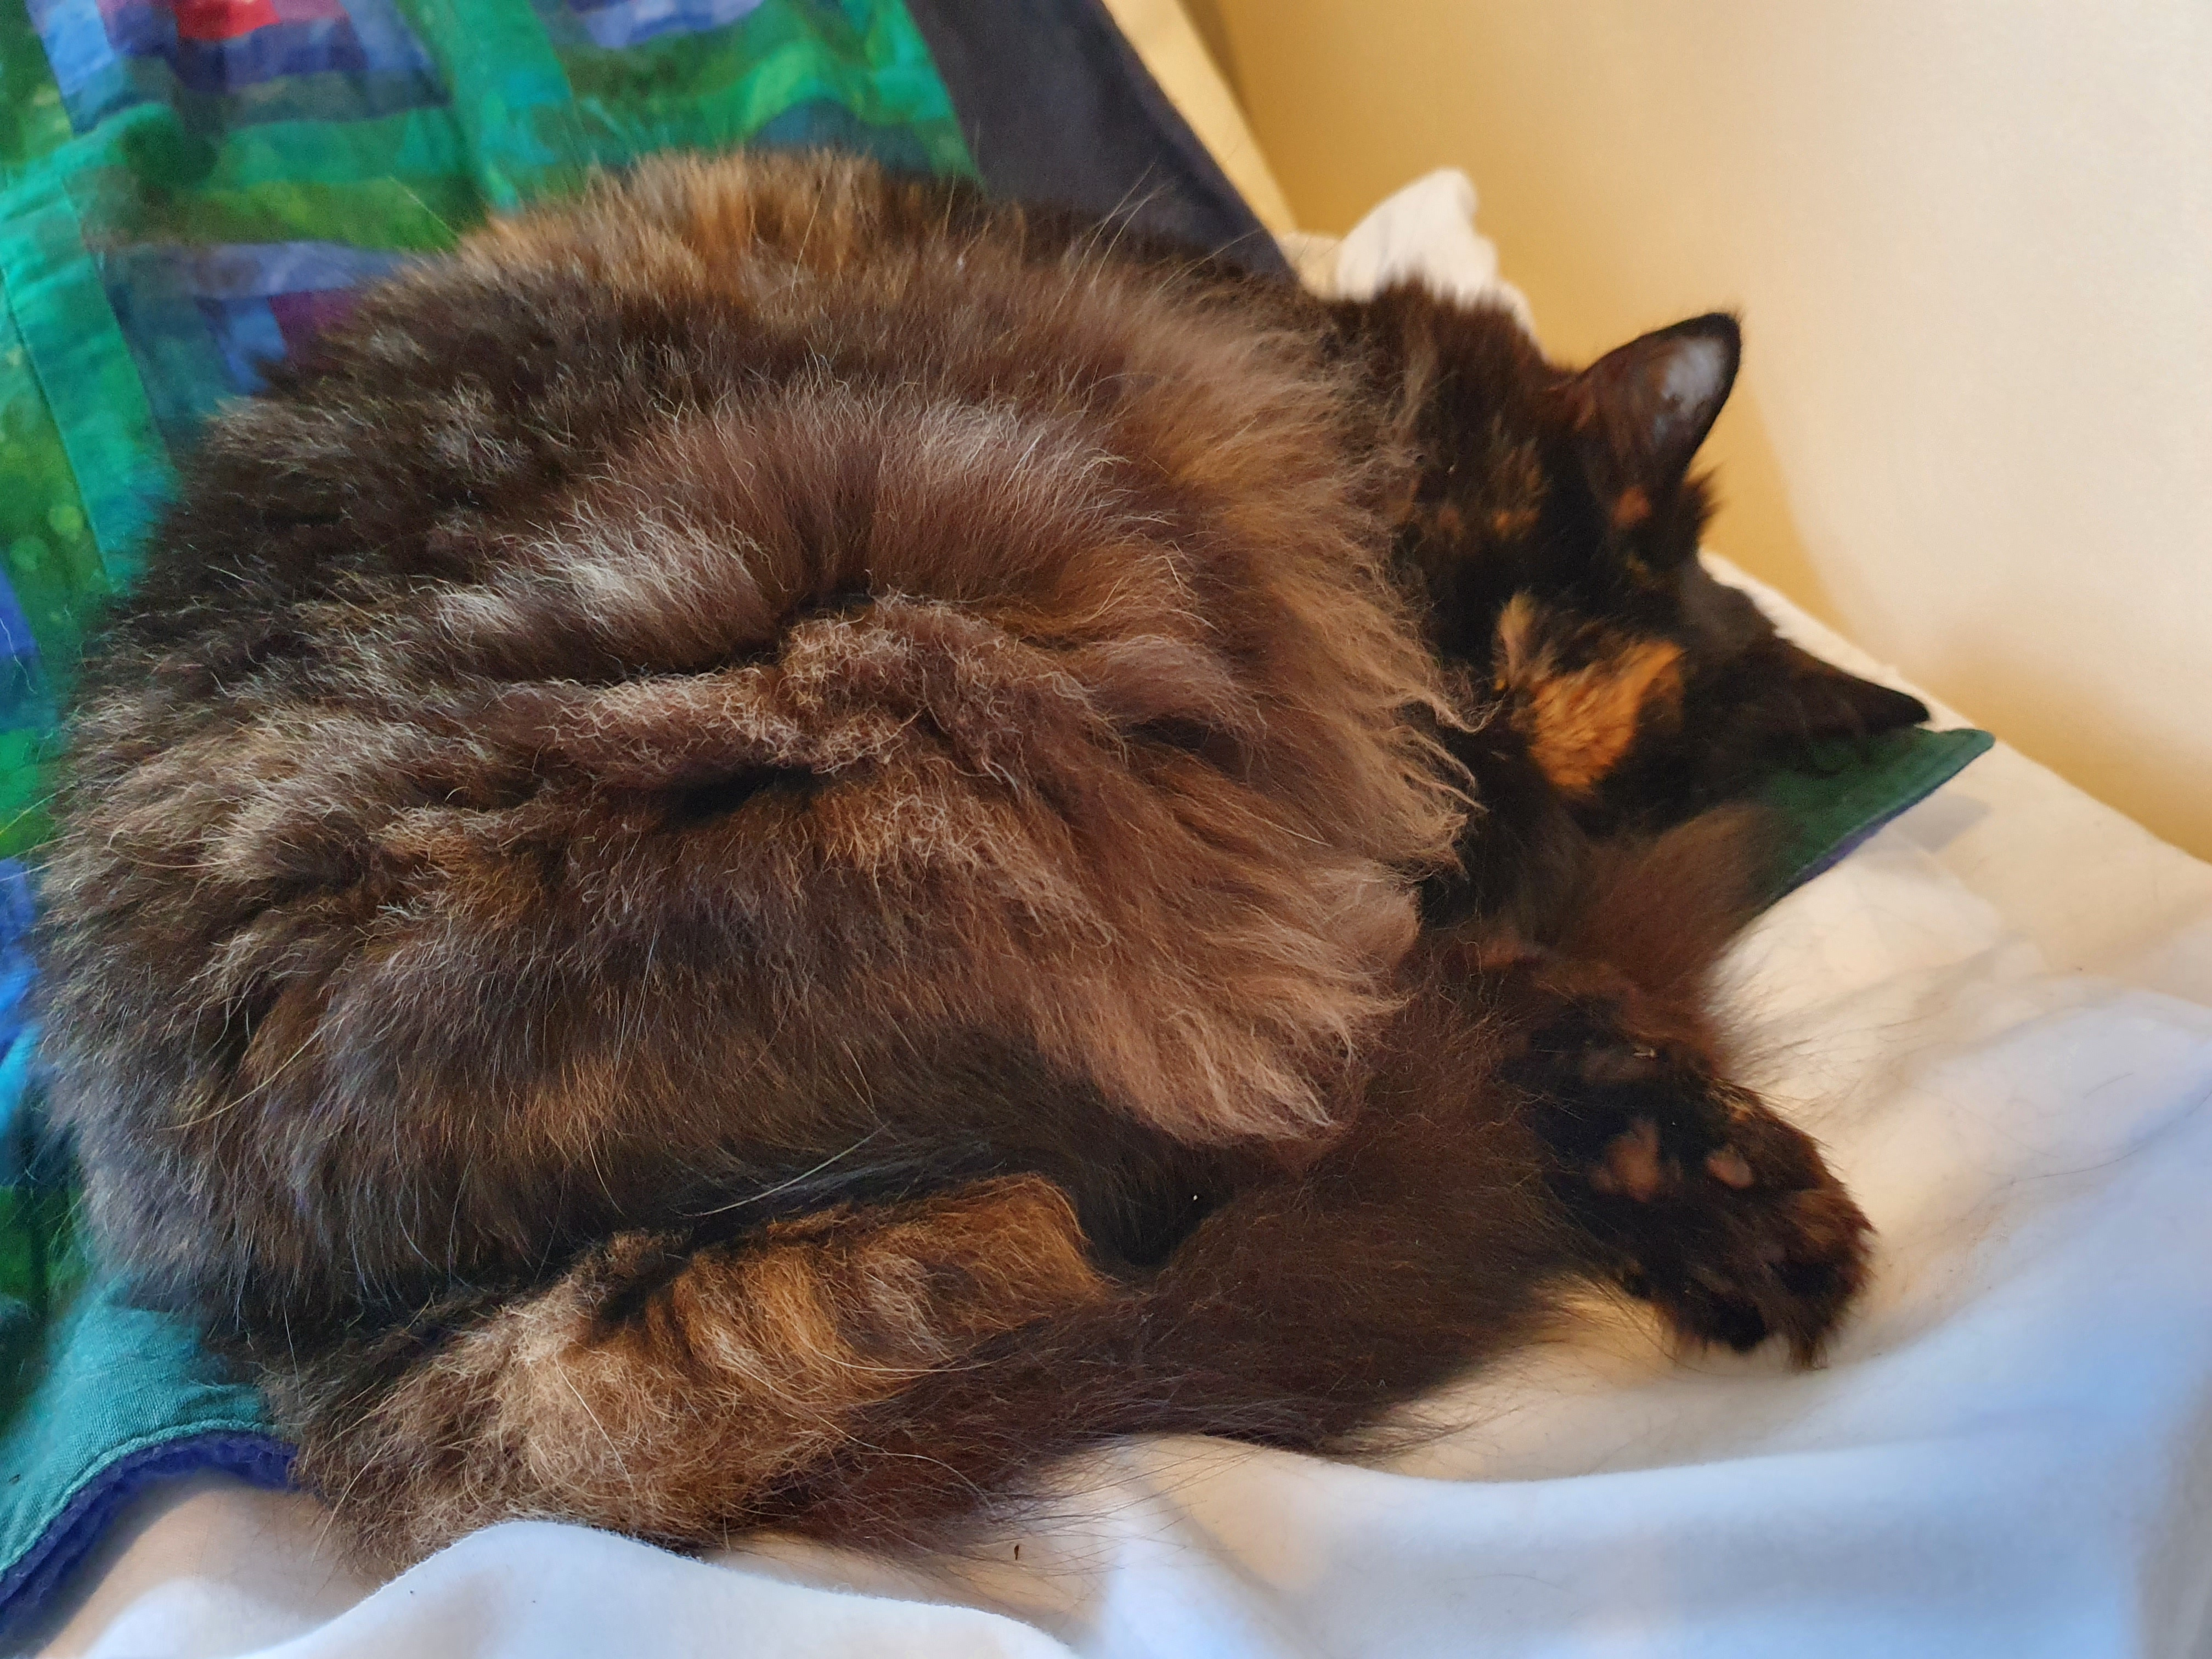 Fluffy tortoishell cat curled up on coloured and white furnishings